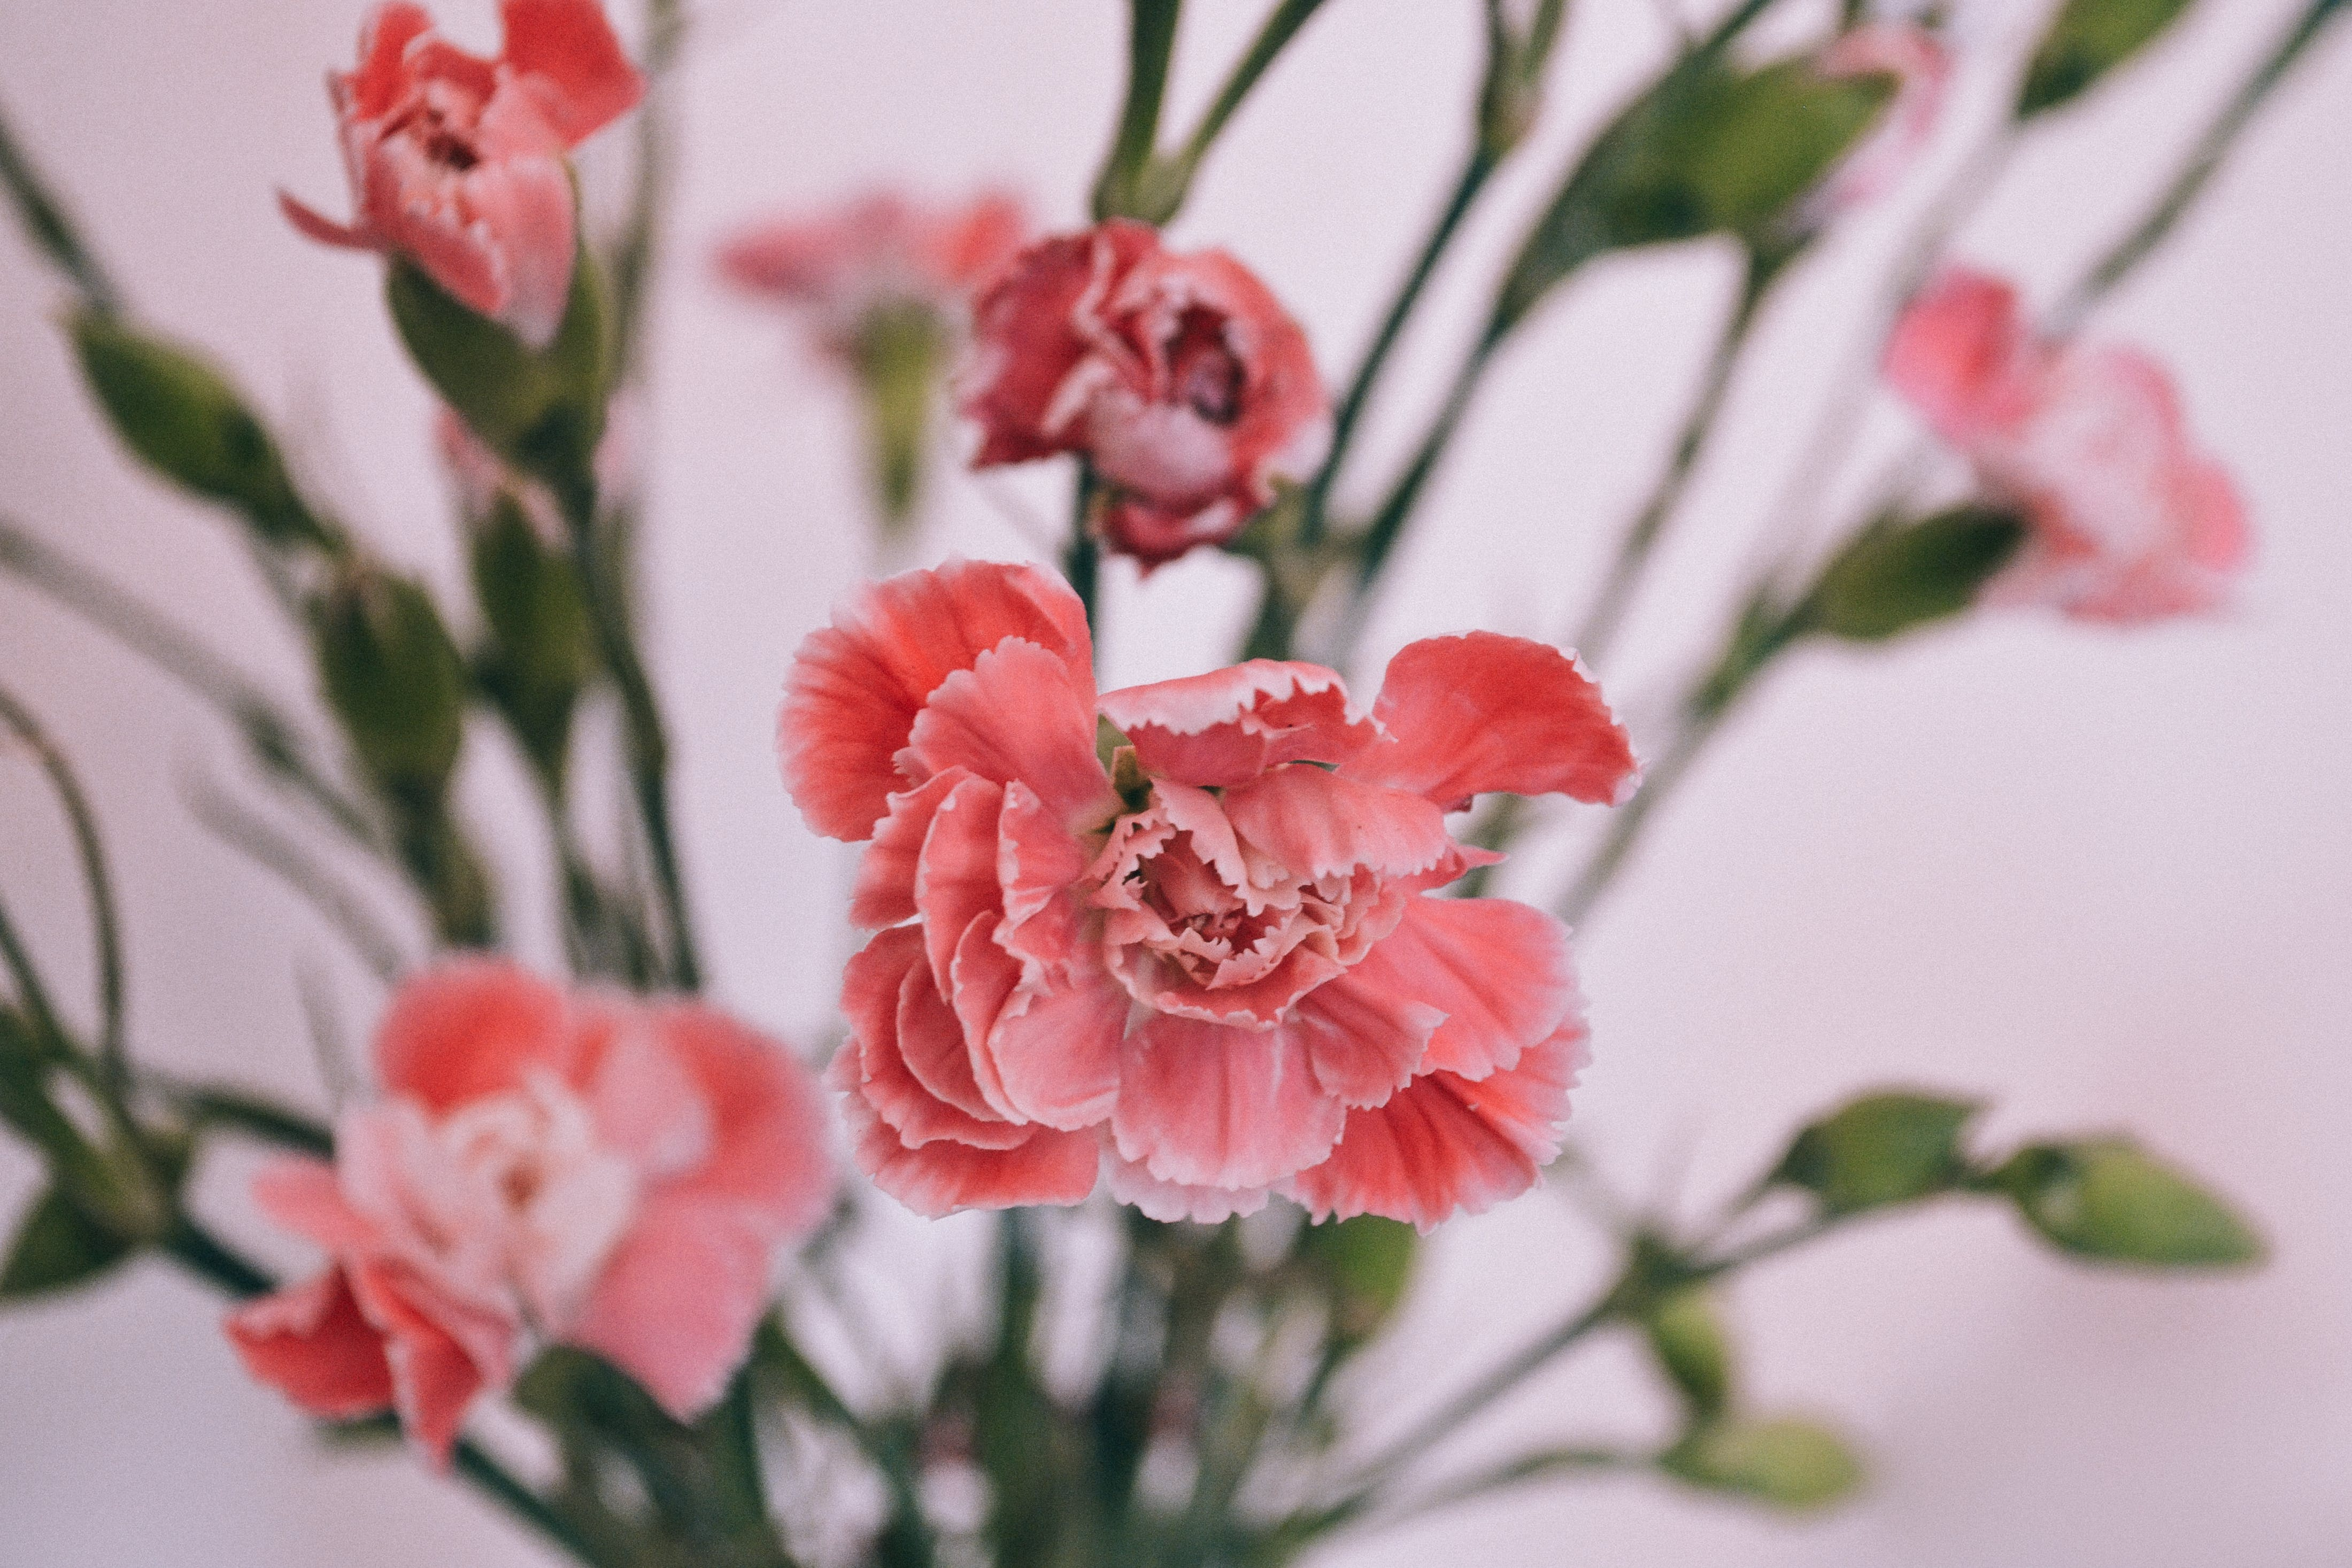 Shallow Focus Photography of Red Flowers